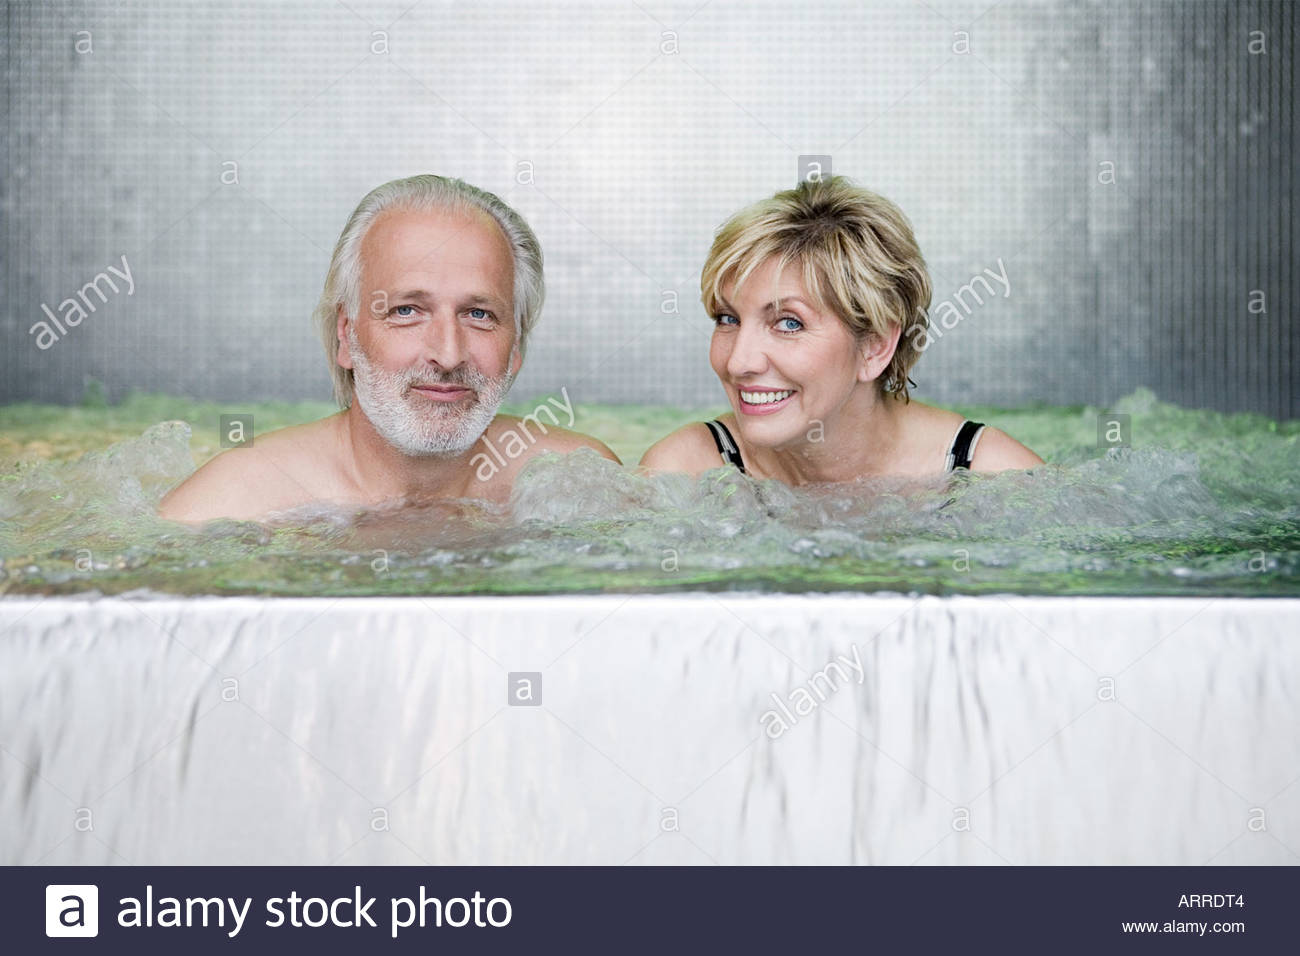 Couple Dans Un Jacuzzi.Couple Dans Un Jacuzzi Banque D Images Photo Stock 9208131